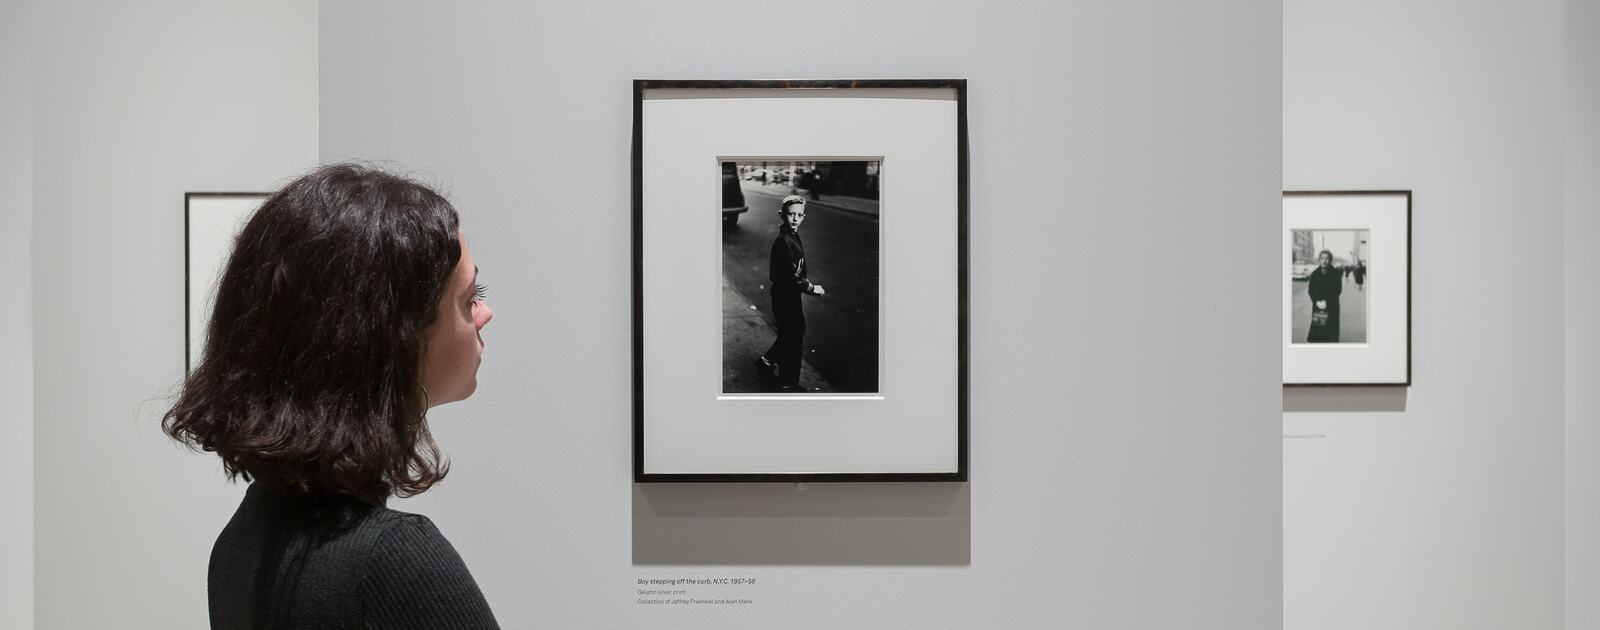 Installation view of Diane Arbus - In the Beginning at Hayward Gallery